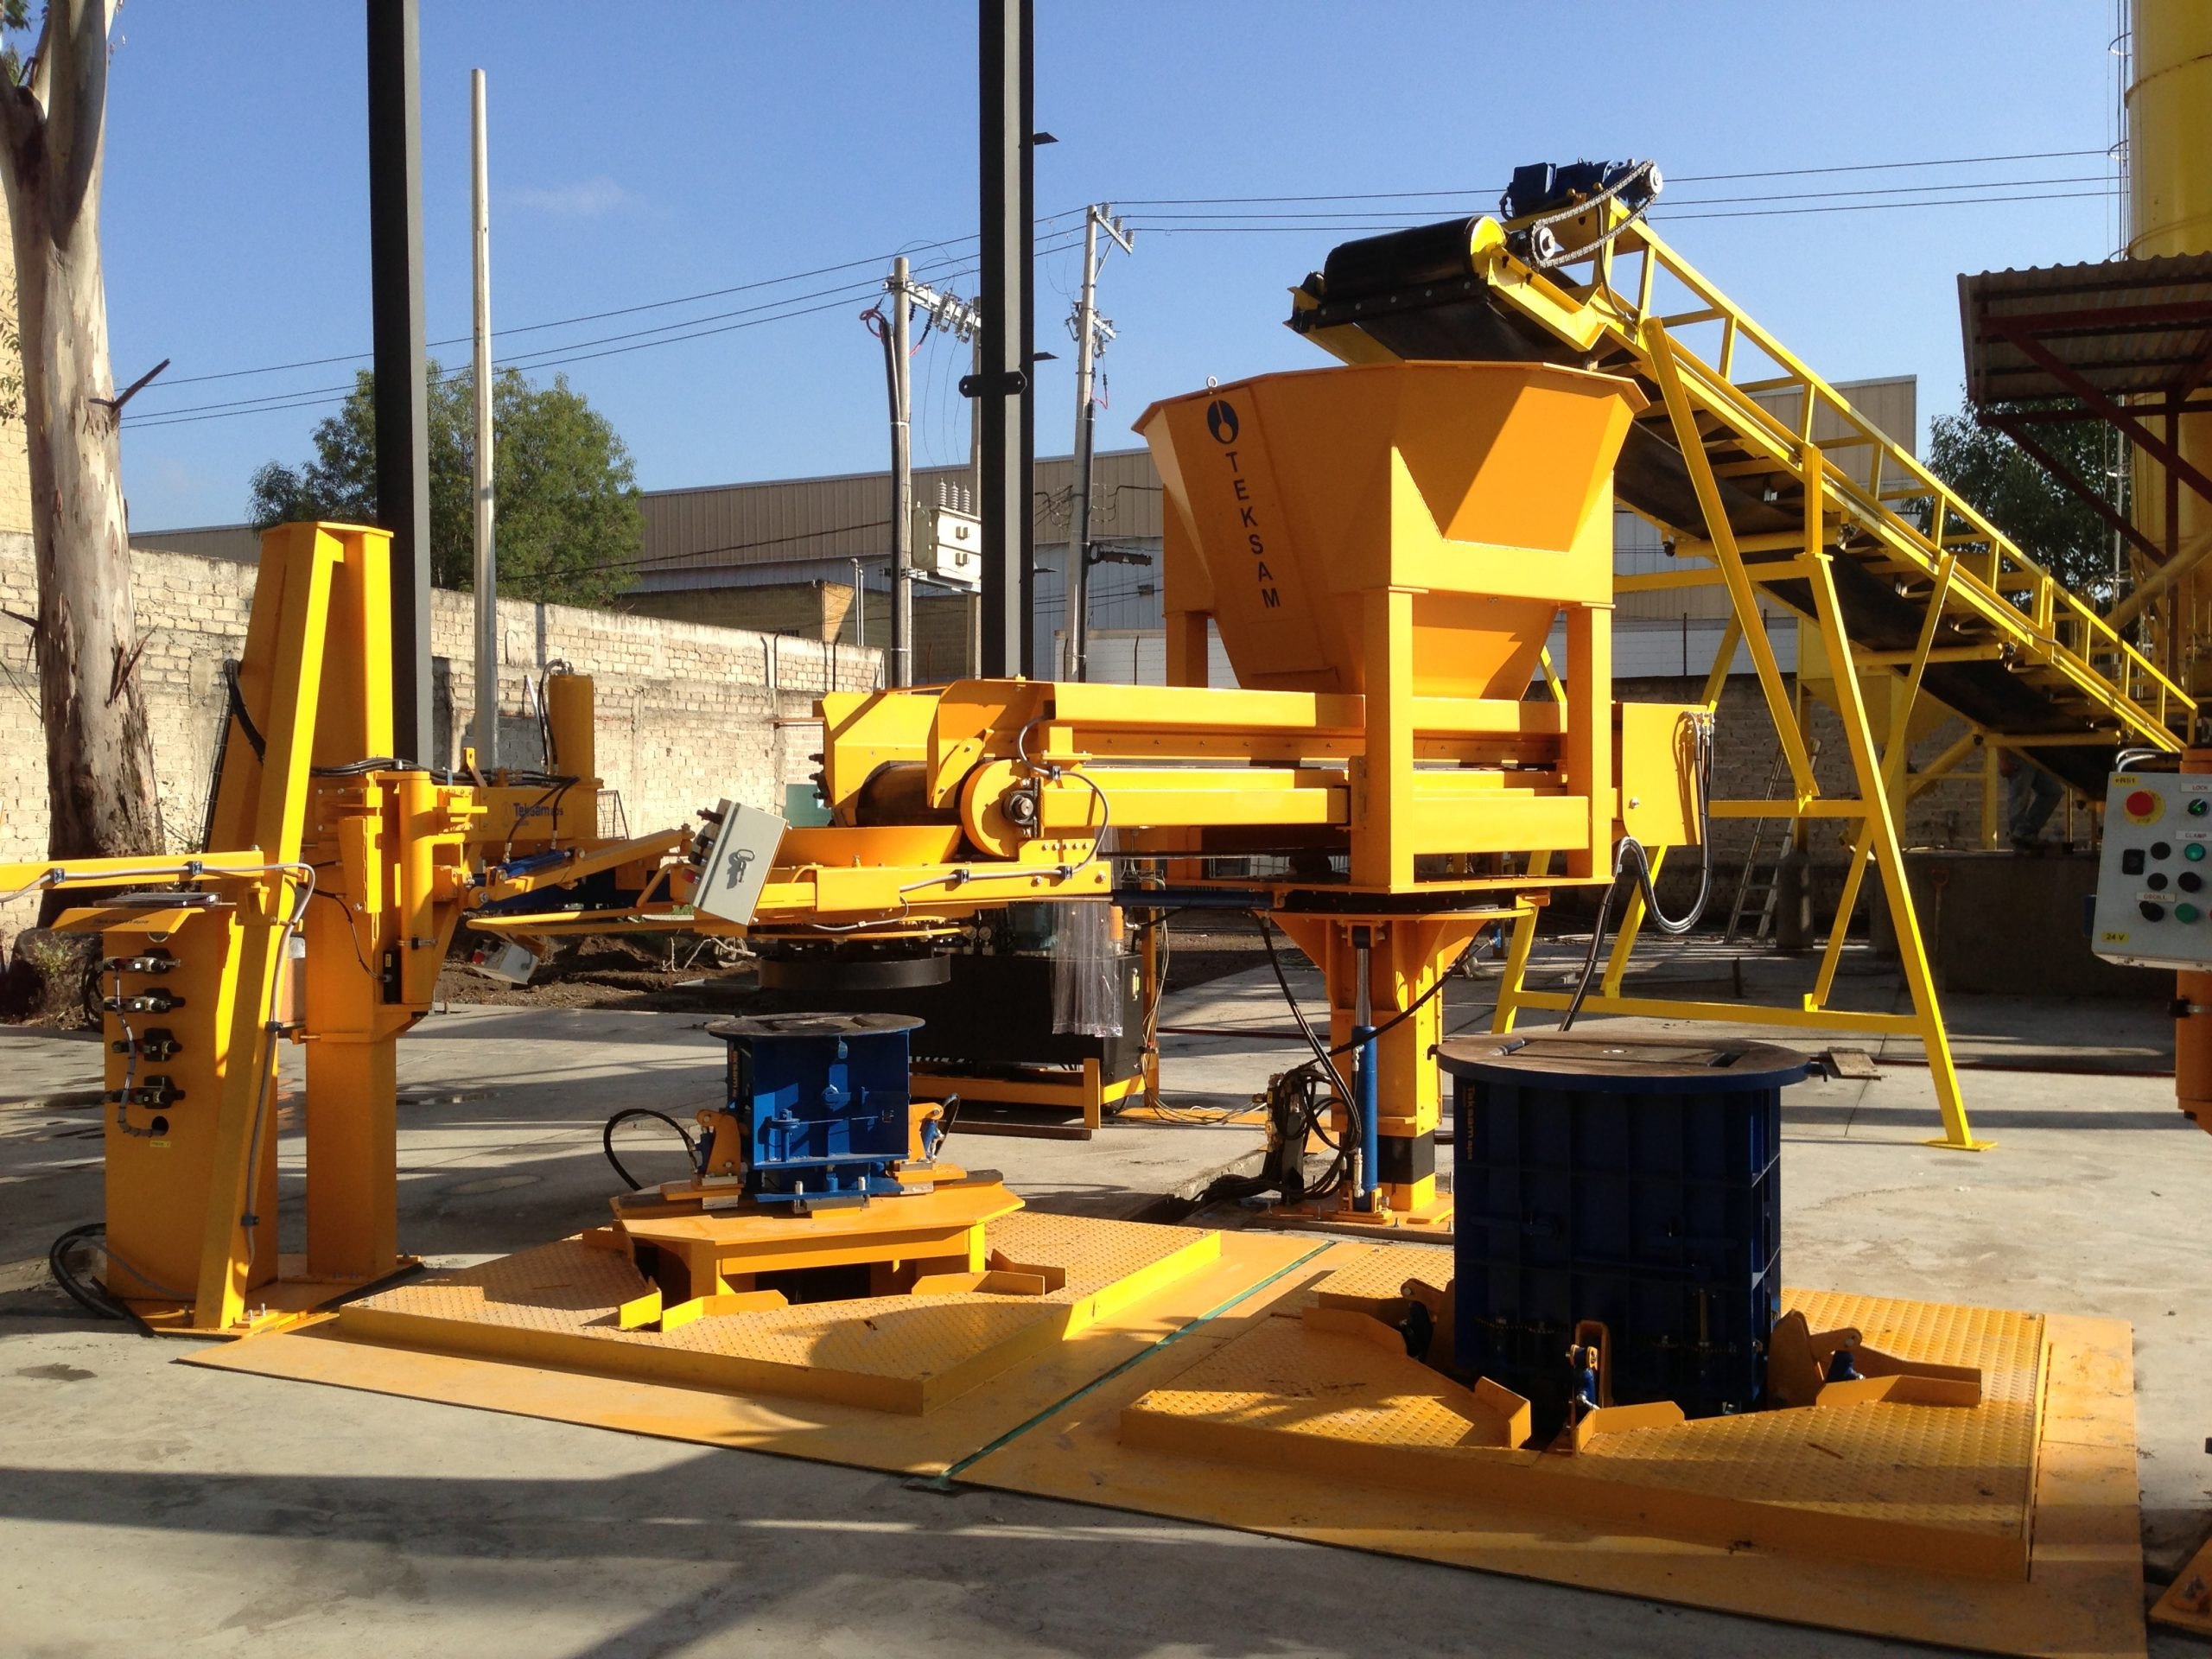 Teksam dual station producing pull boxes and pits